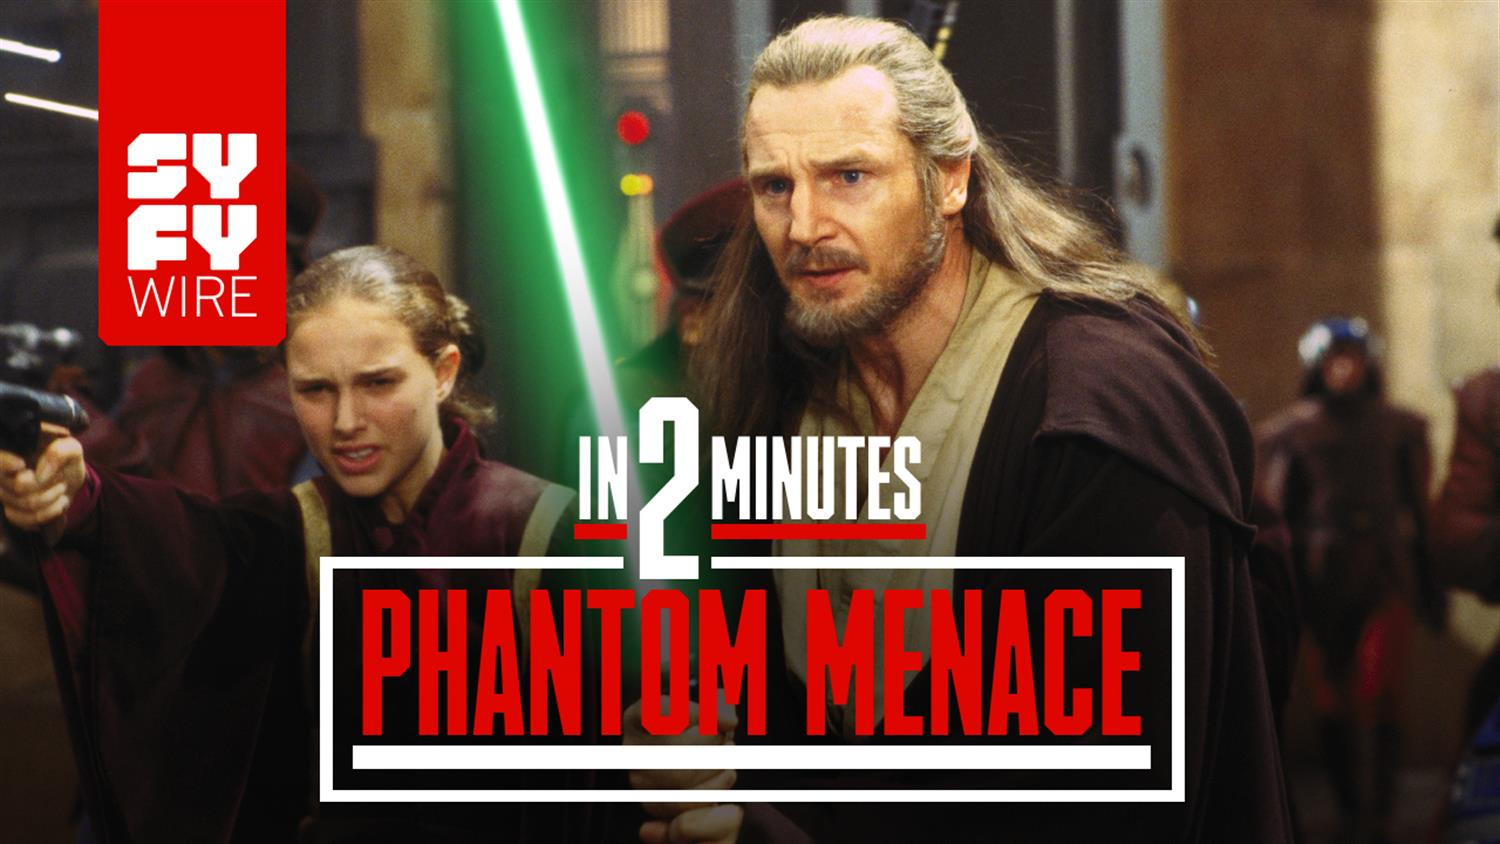 Star Wars: The Phantom Menace In 2 Minutes